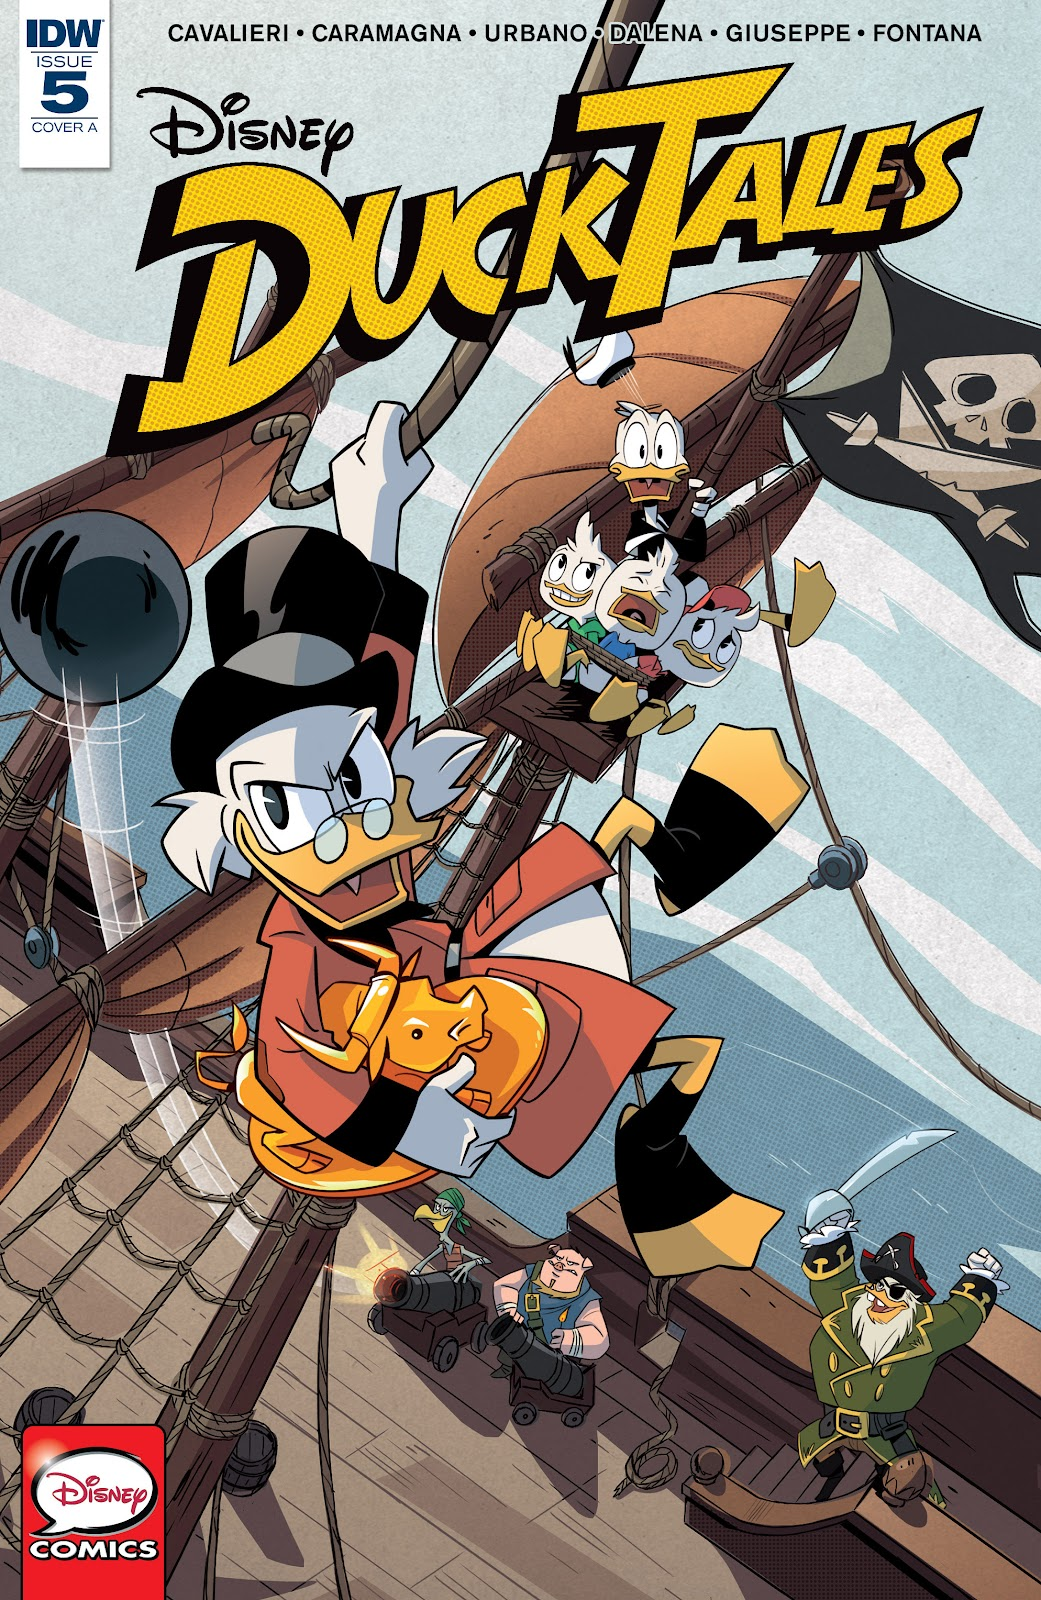 Ducktales (2017) issue 5 - Page 1